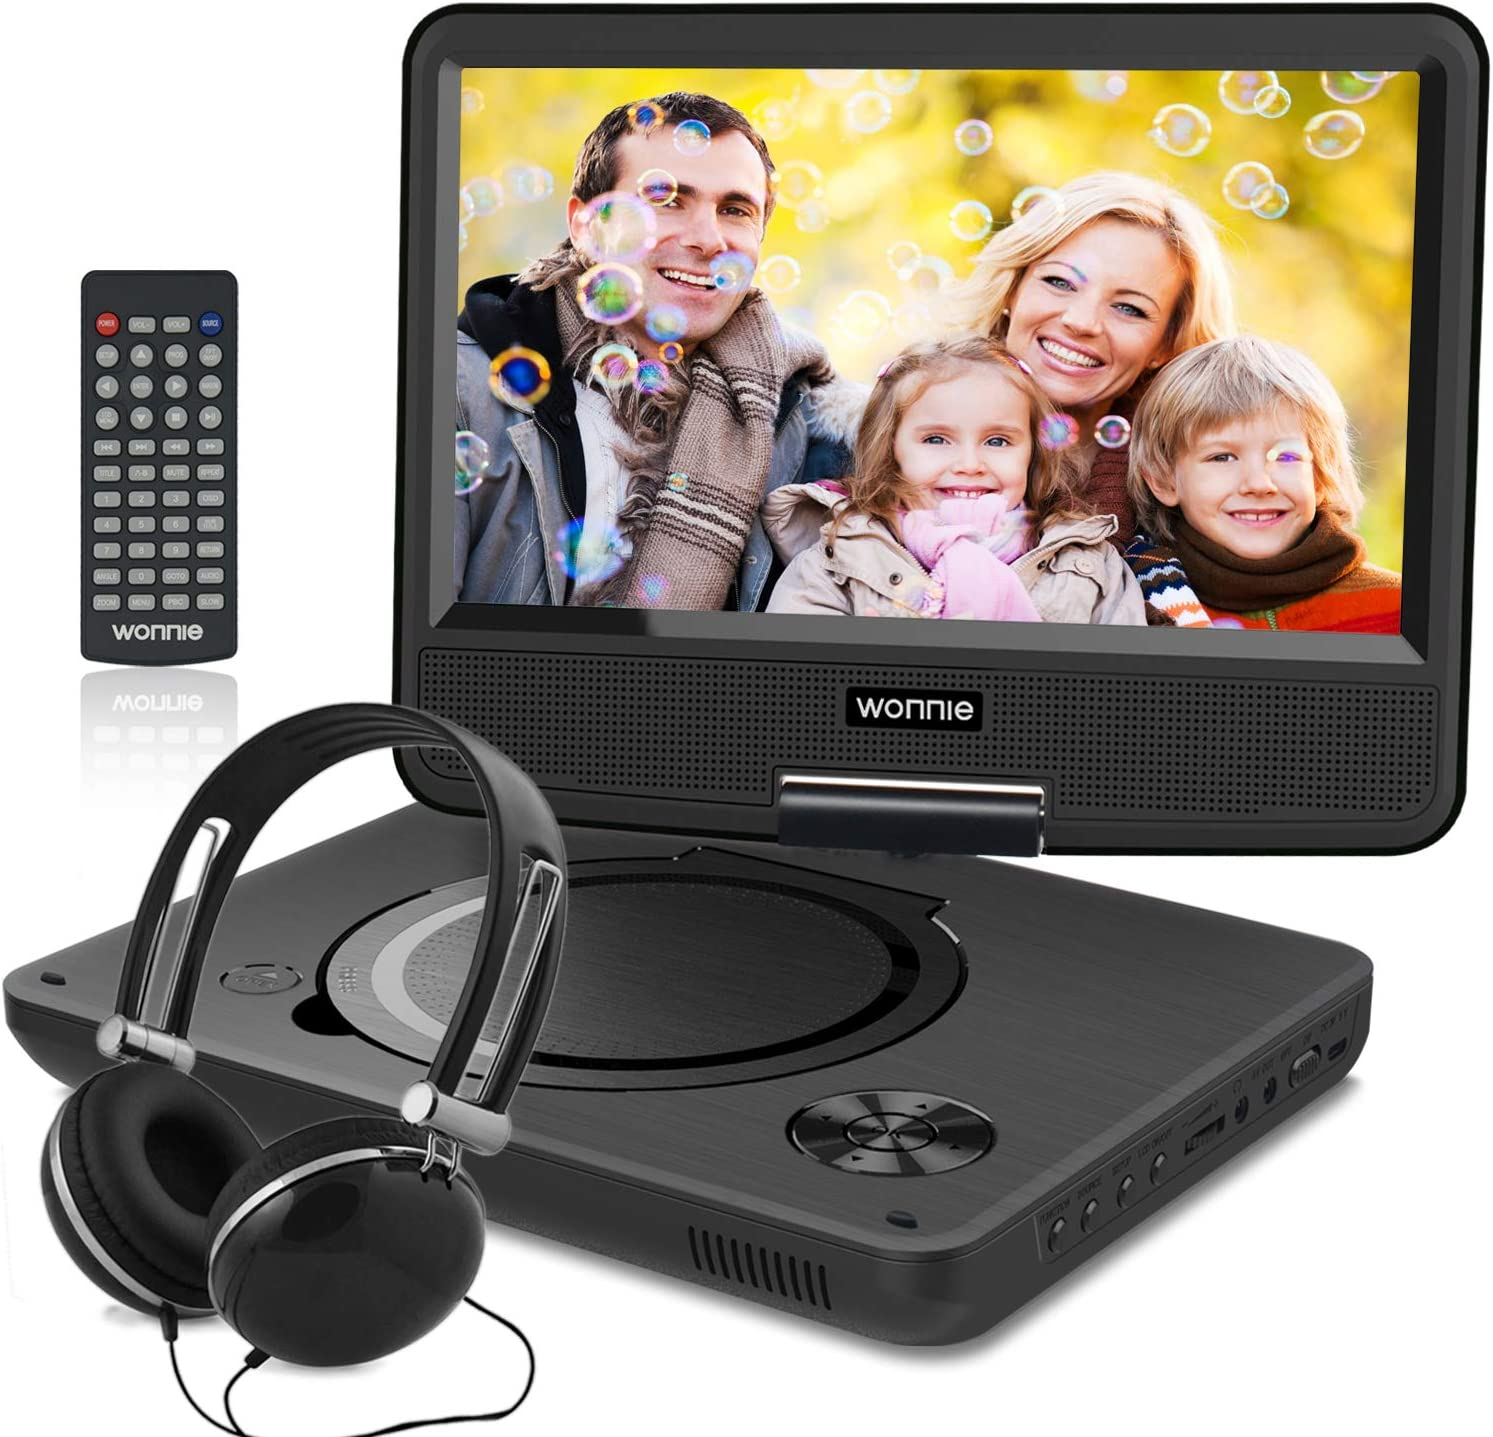 10 Best Portable Dvd Players In 2020 For Cars Kids And Airplane Travel